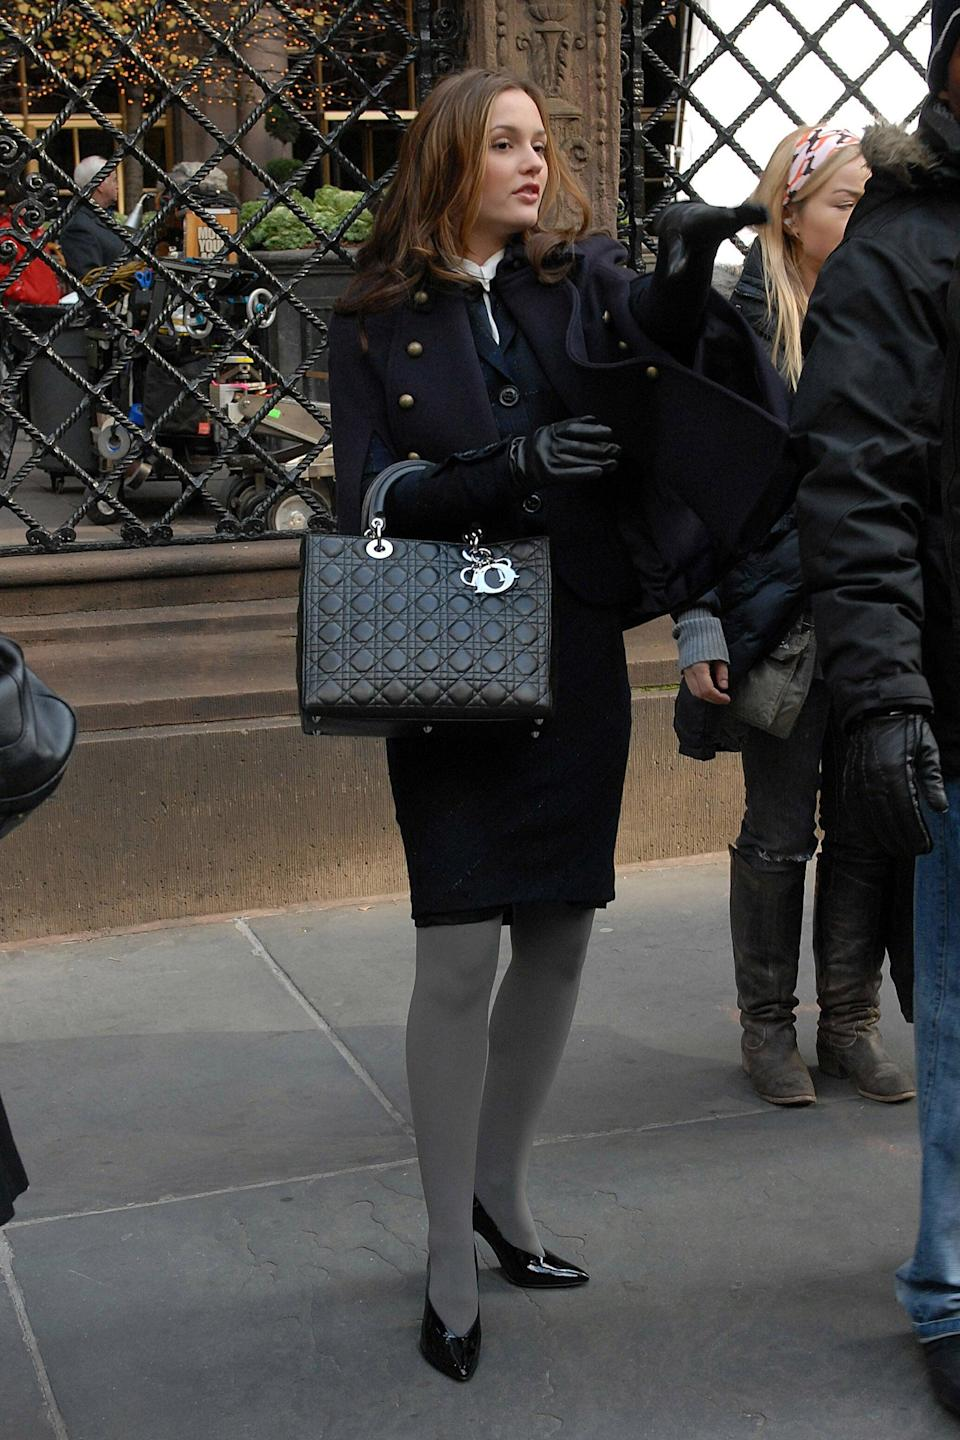 """<p>Any Dior bag with charms was on our must-have list, as was anything <a href=""""http://www.popsugar.com/fashion/Blair-Waldorf-Best-Style-Gossip-Girl-34510133#opening-slide"""" class=""""link rapid-noclick-resp"""" rel=""""nofollow noopener"""" target=""""_blank"""" data-ylk=""""slk:that Blair Waldorf wore"""">that Blair Waldorf wore</a>.</p>"""